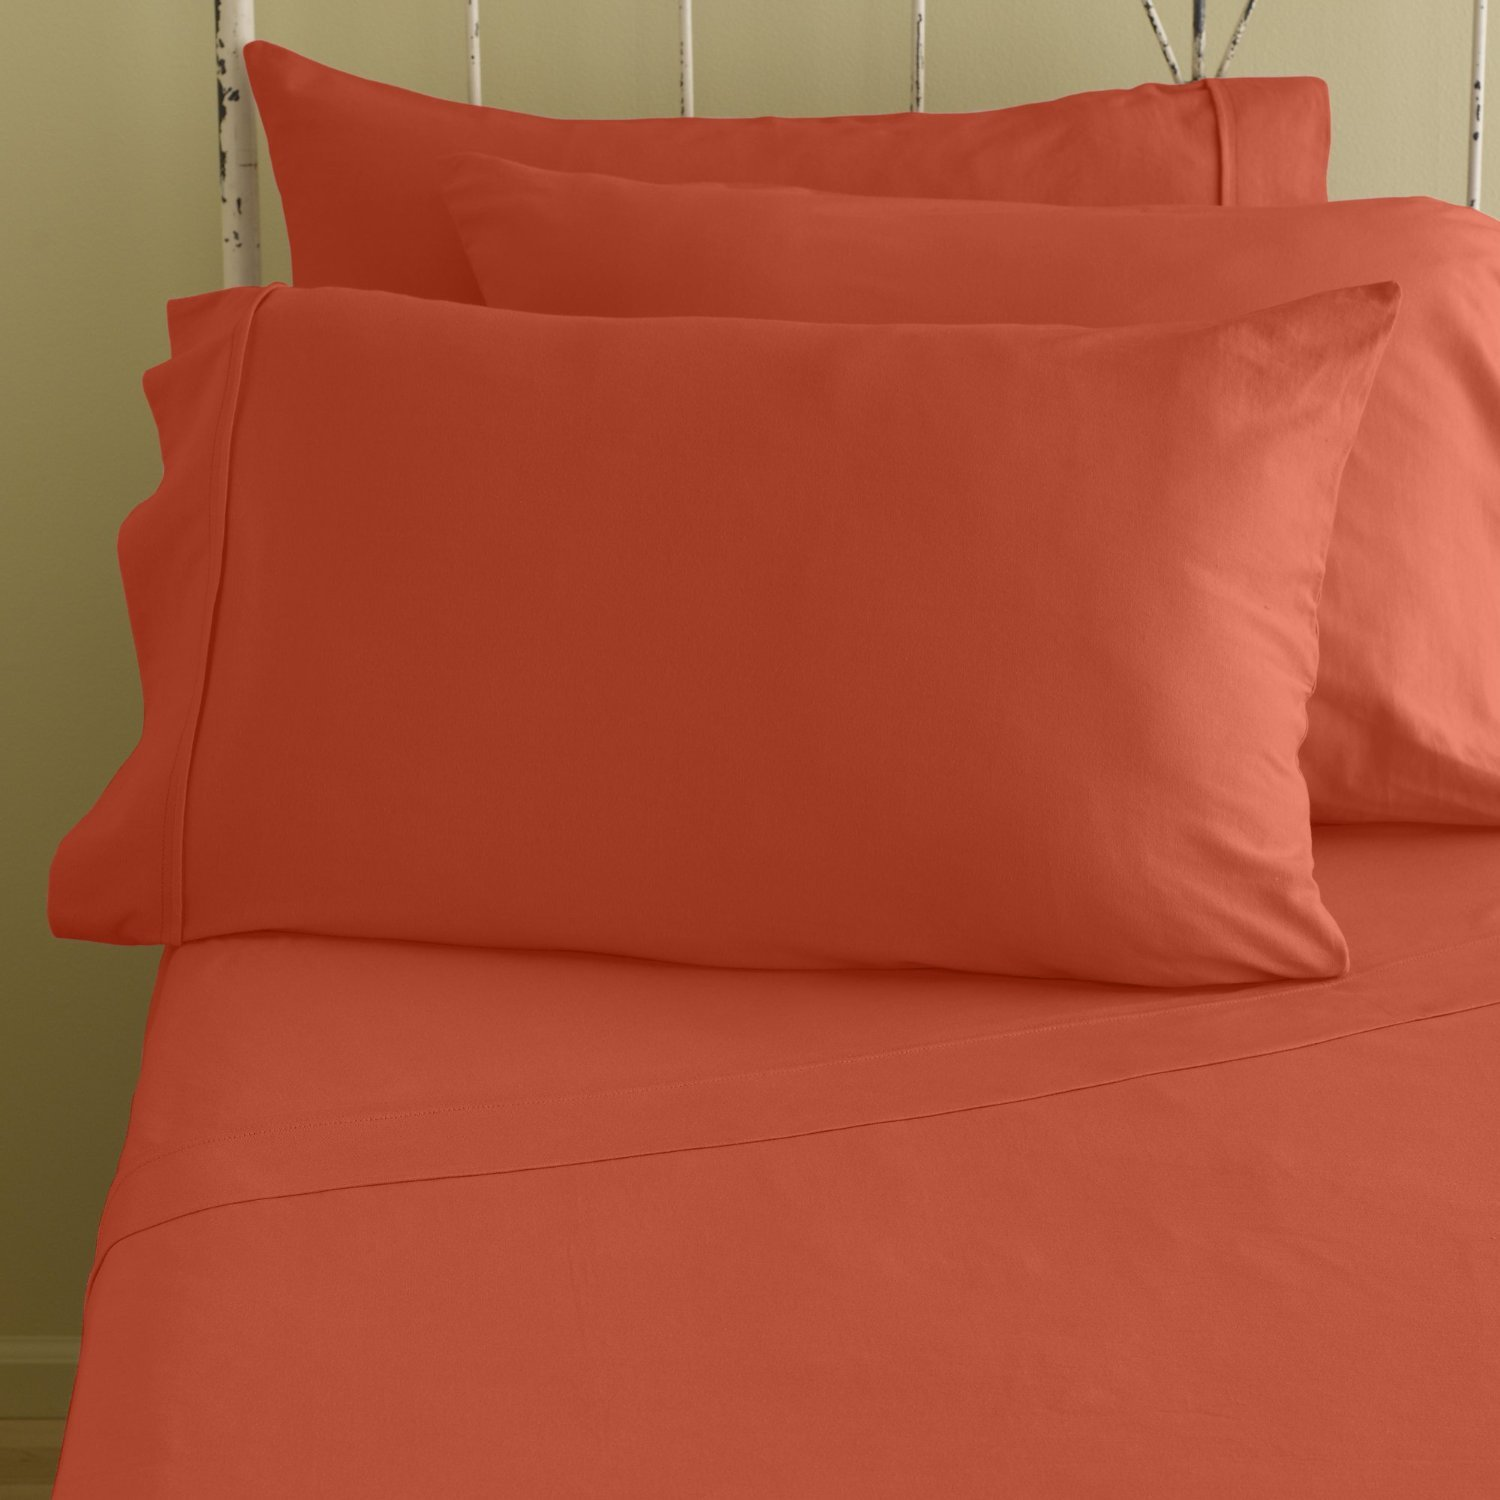 Bed Life Solid Orange - Top / Flat Sheet With Matching Pillow Cases ( Set of 3 Pack ) 500 TC Ultra Soft Sizes ( Full XL ) Made By Galaxy's Linen